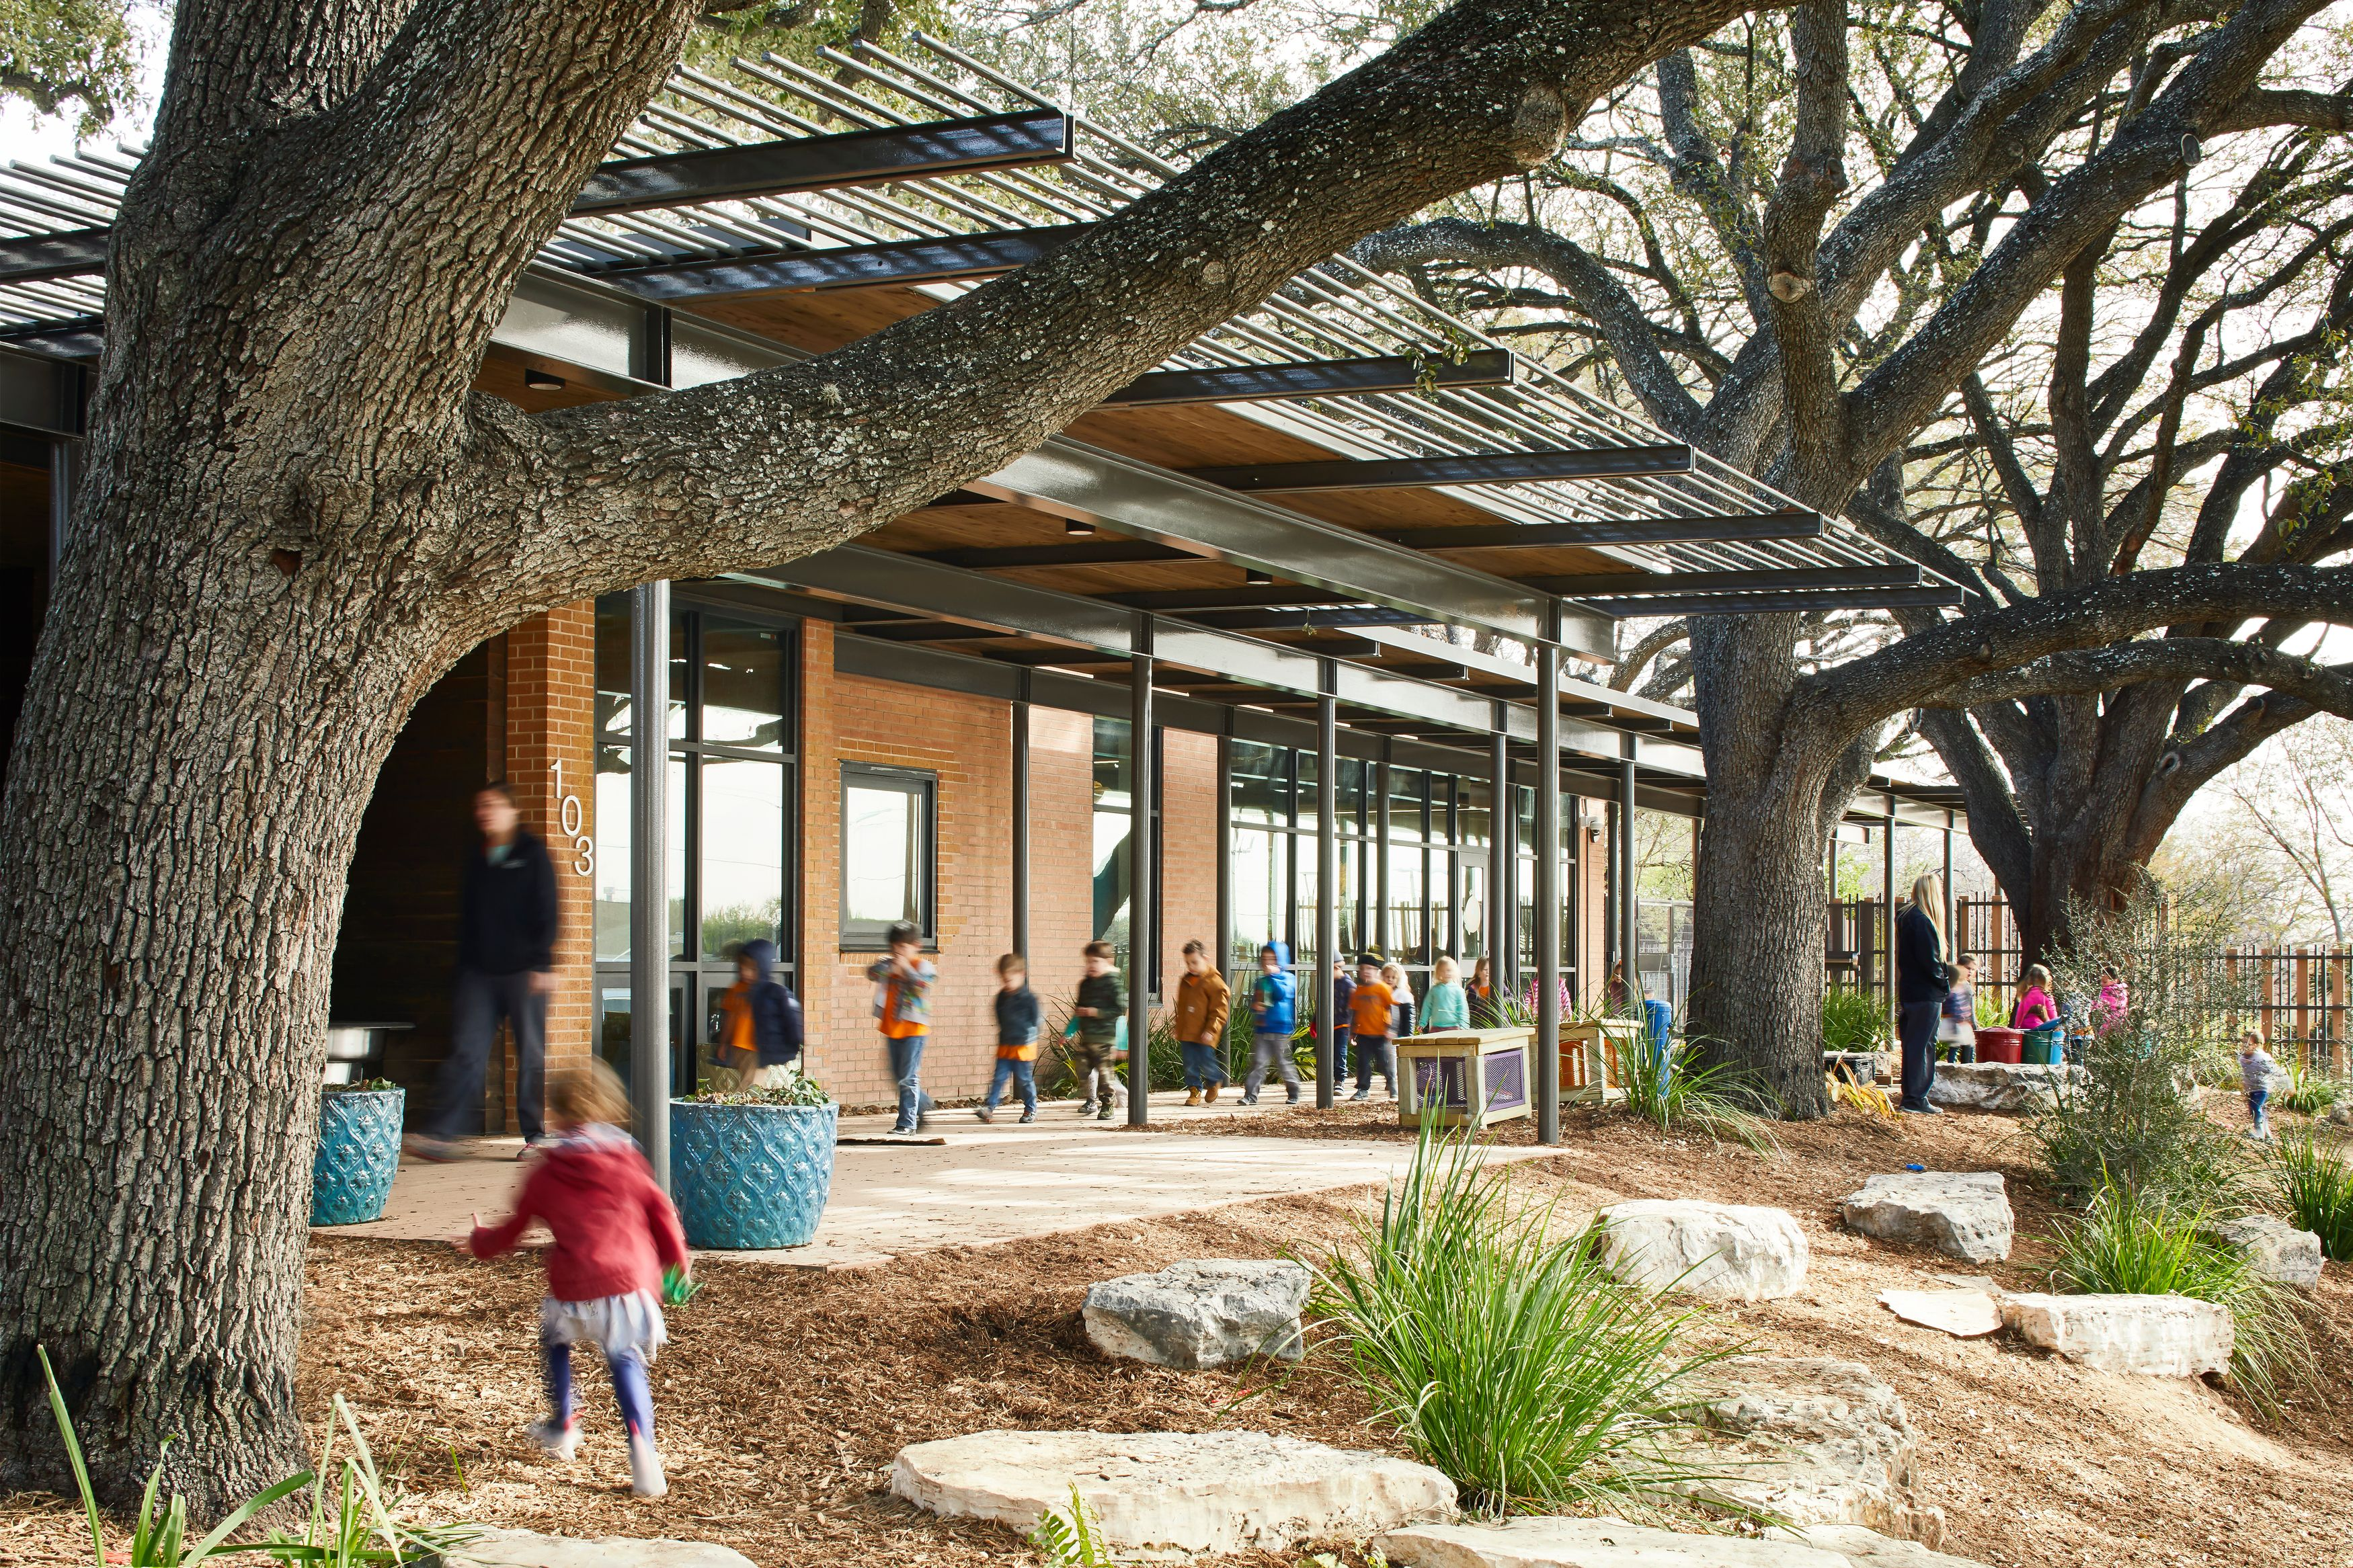 The San Antonio Zoo School Is The Largest Nature Based Pre School In